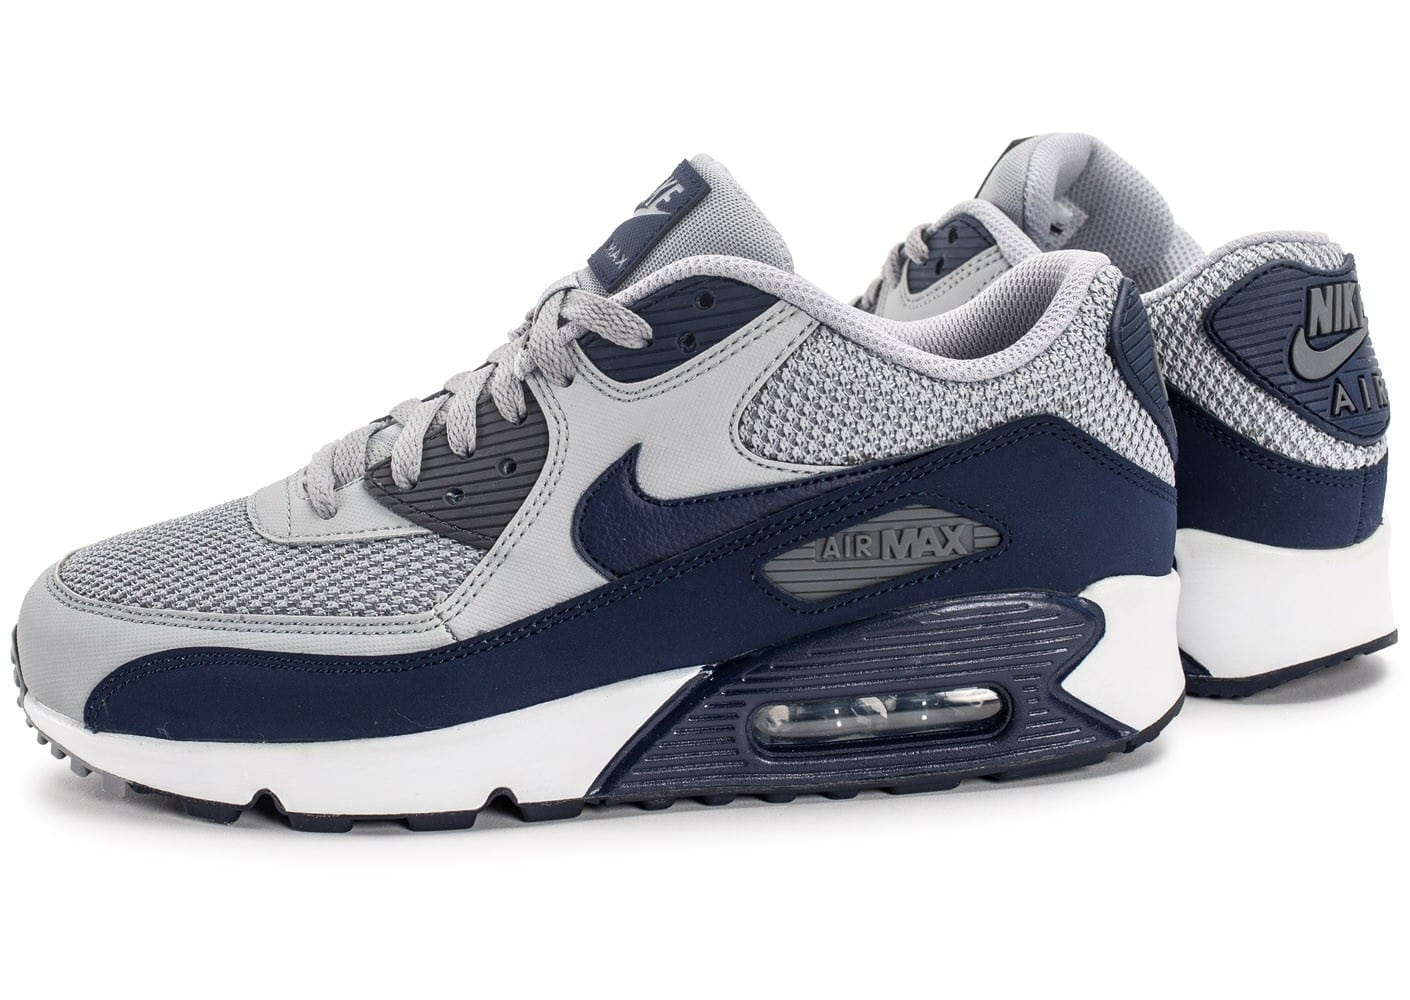 nike air max 90 homme chaussures bleu. Black Bedroom Furniture Sets. Home Design Ideas